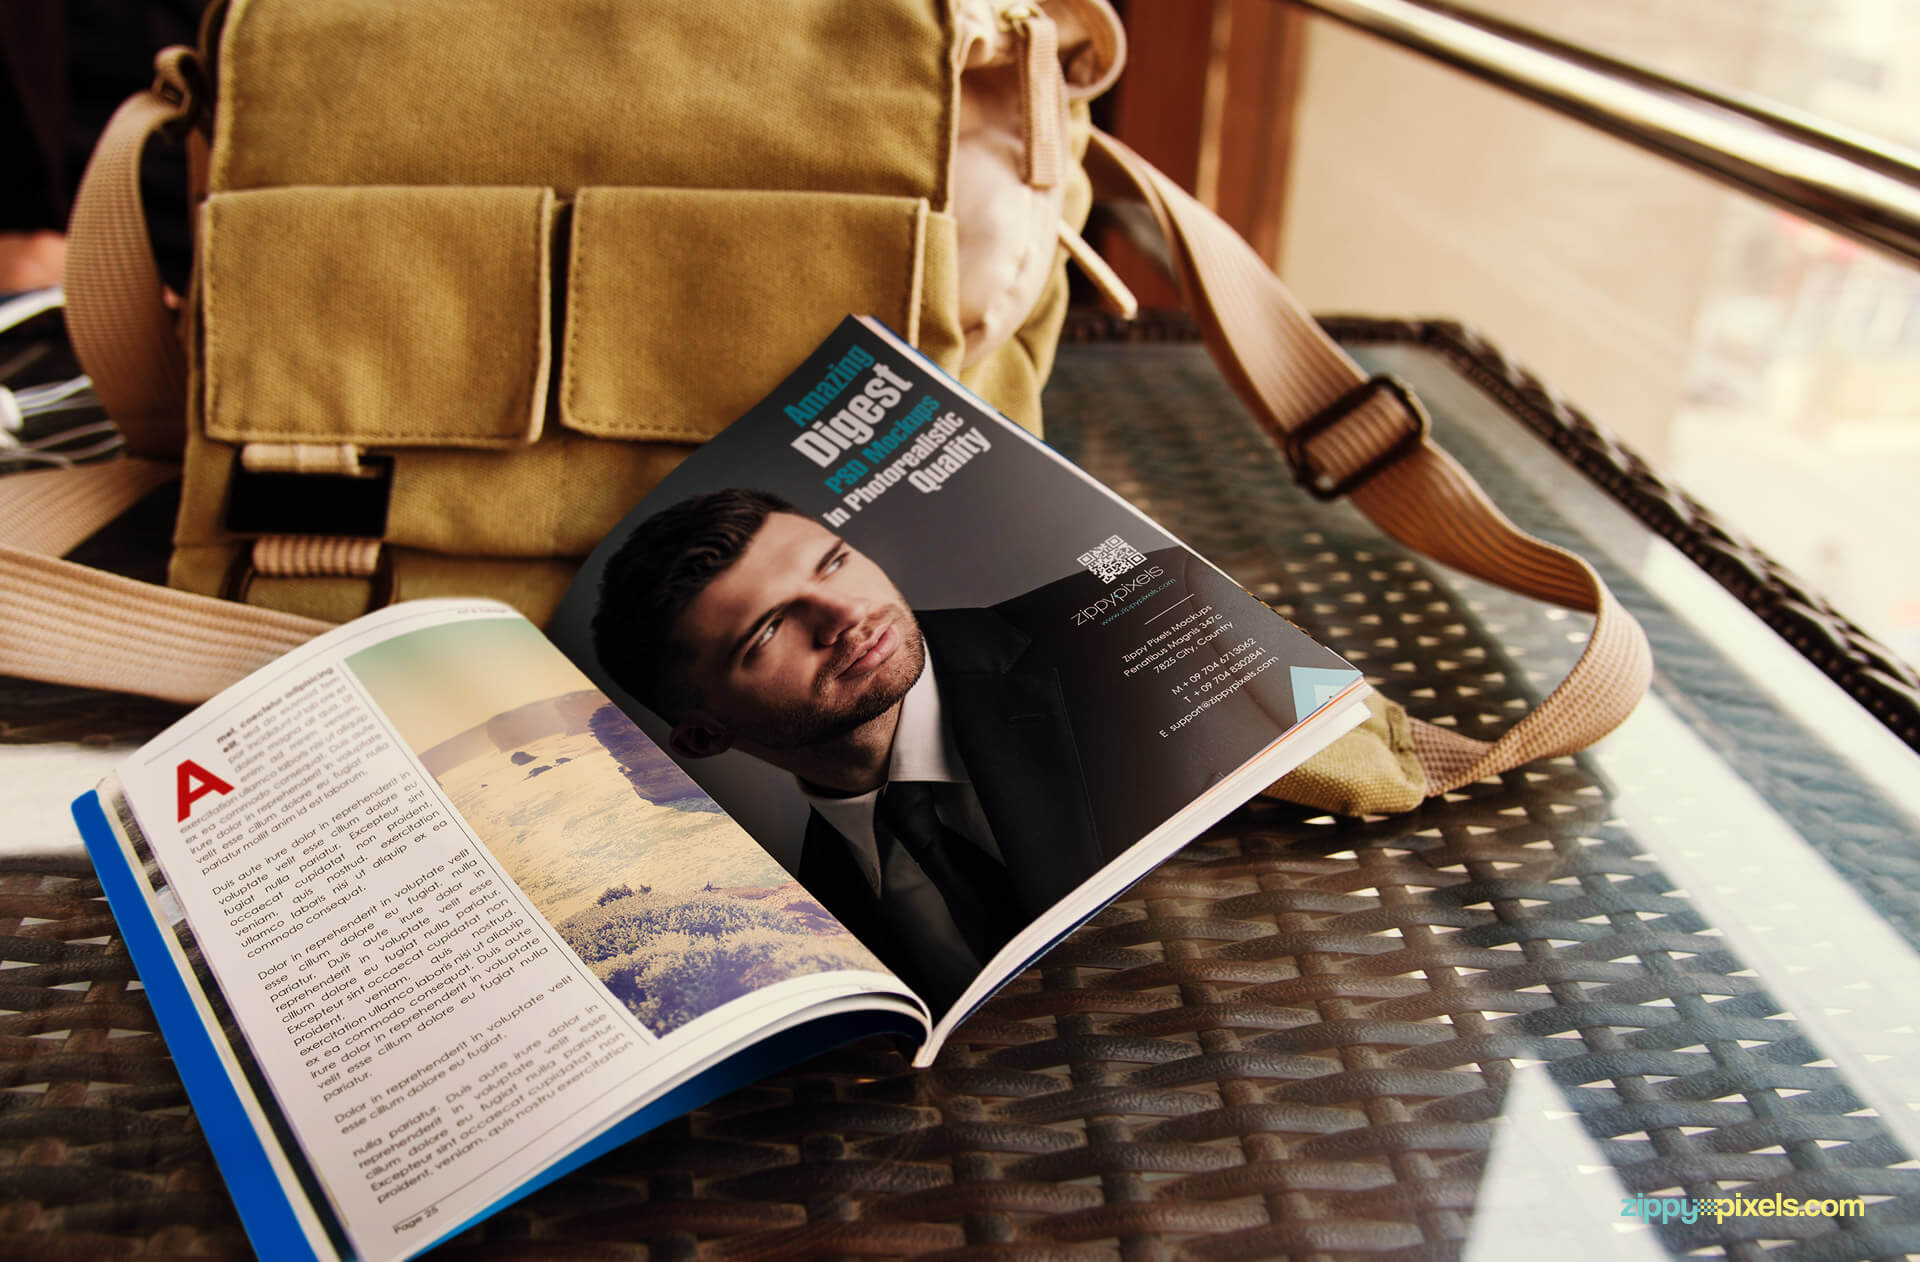 Mockup of opened paperback digest lying on table with bag on side